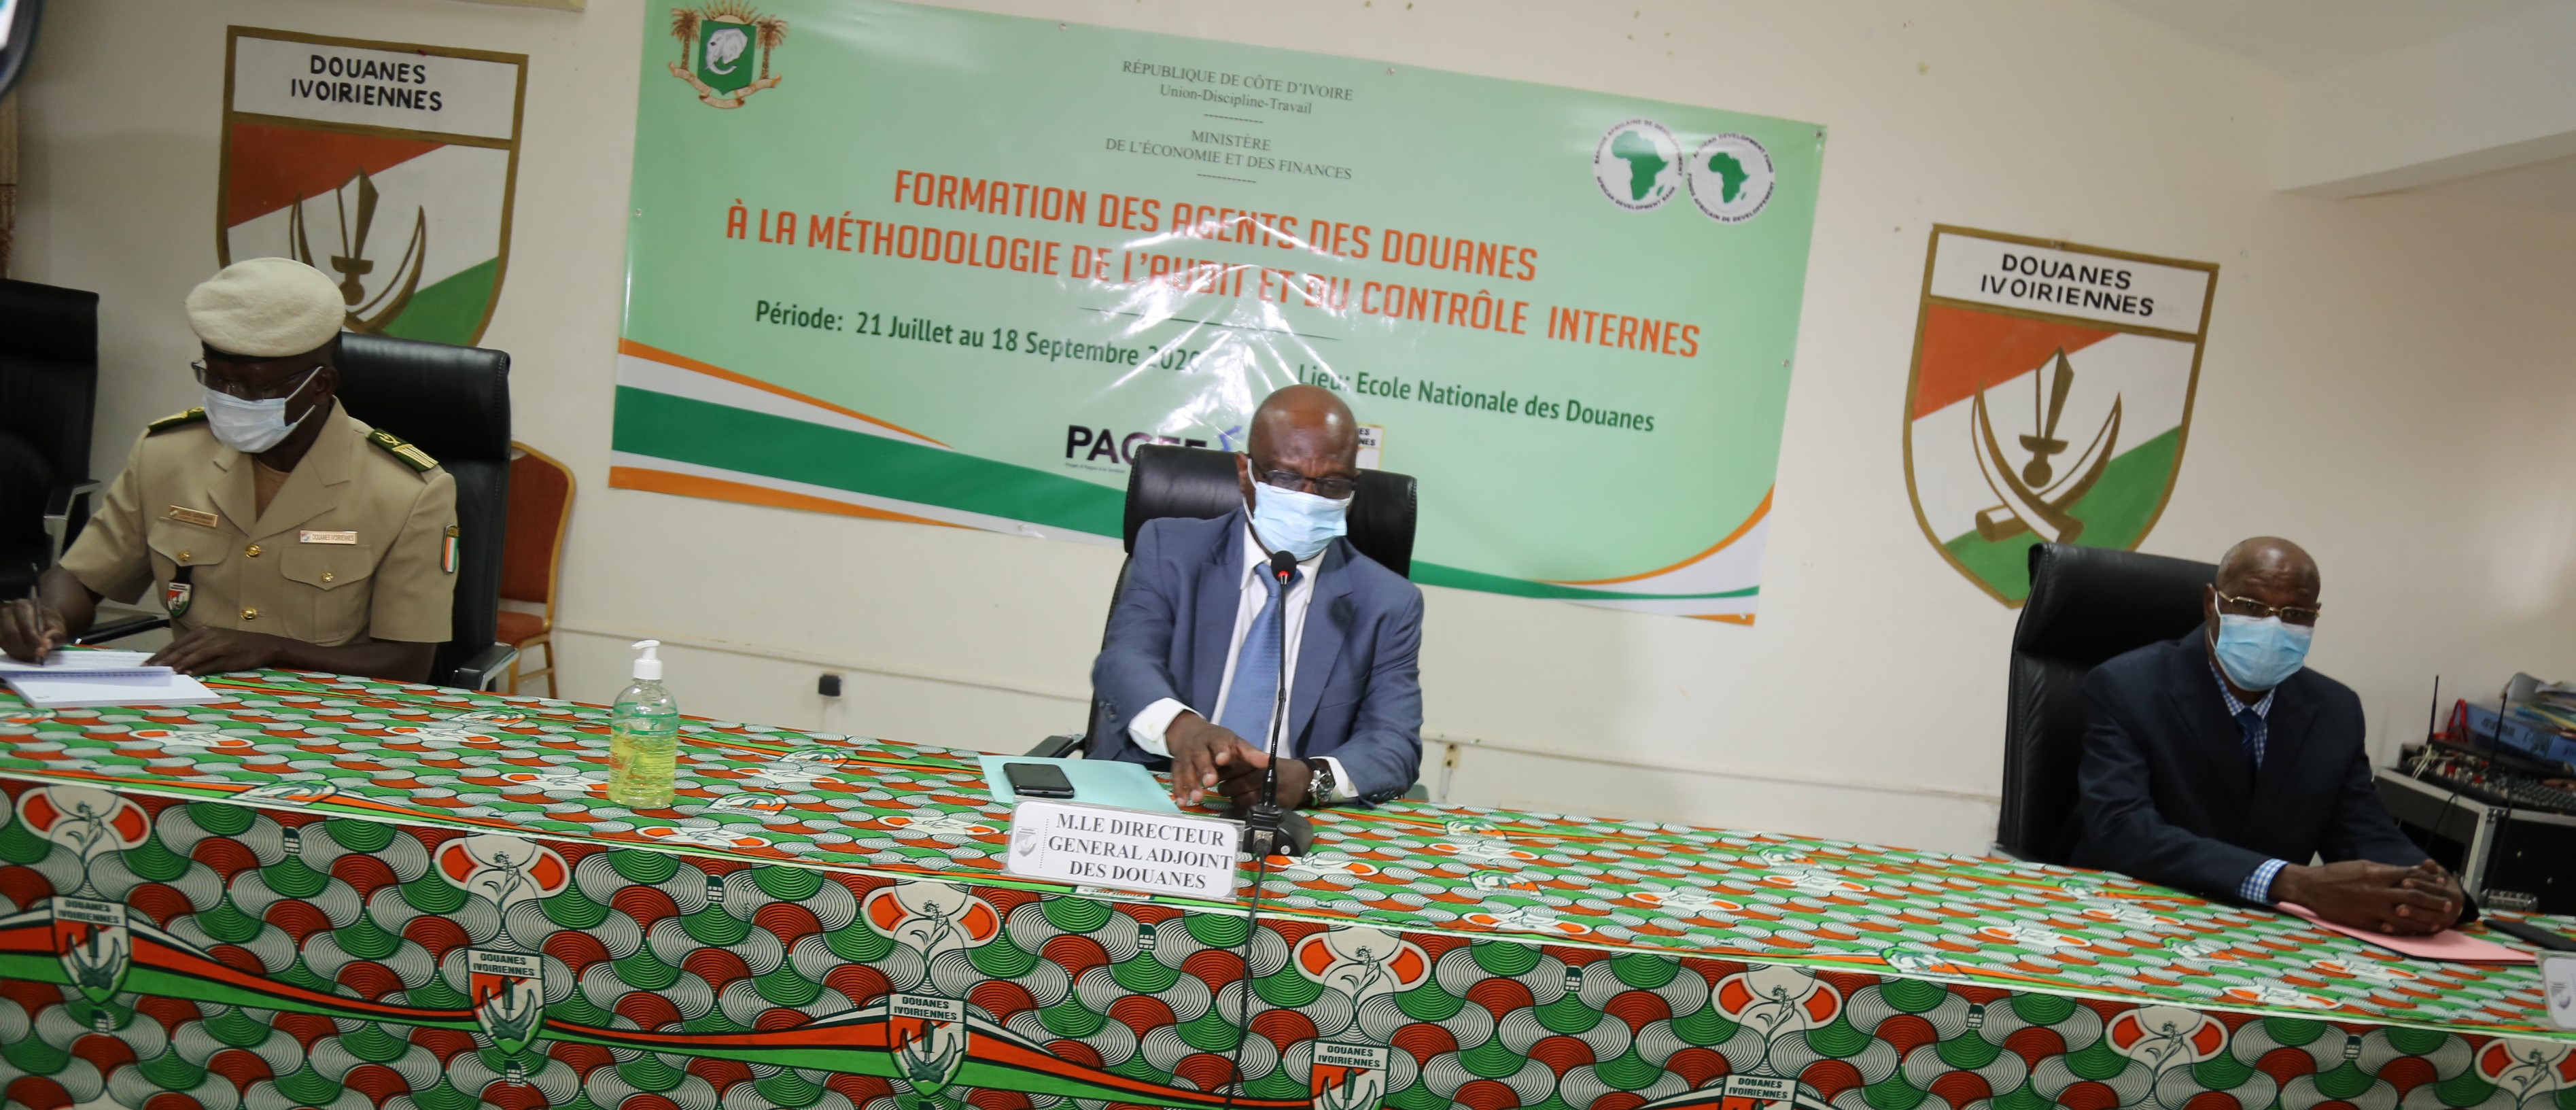 audit-et-controle-interne-une-quarantaine-dagents-de-douane-en-formation